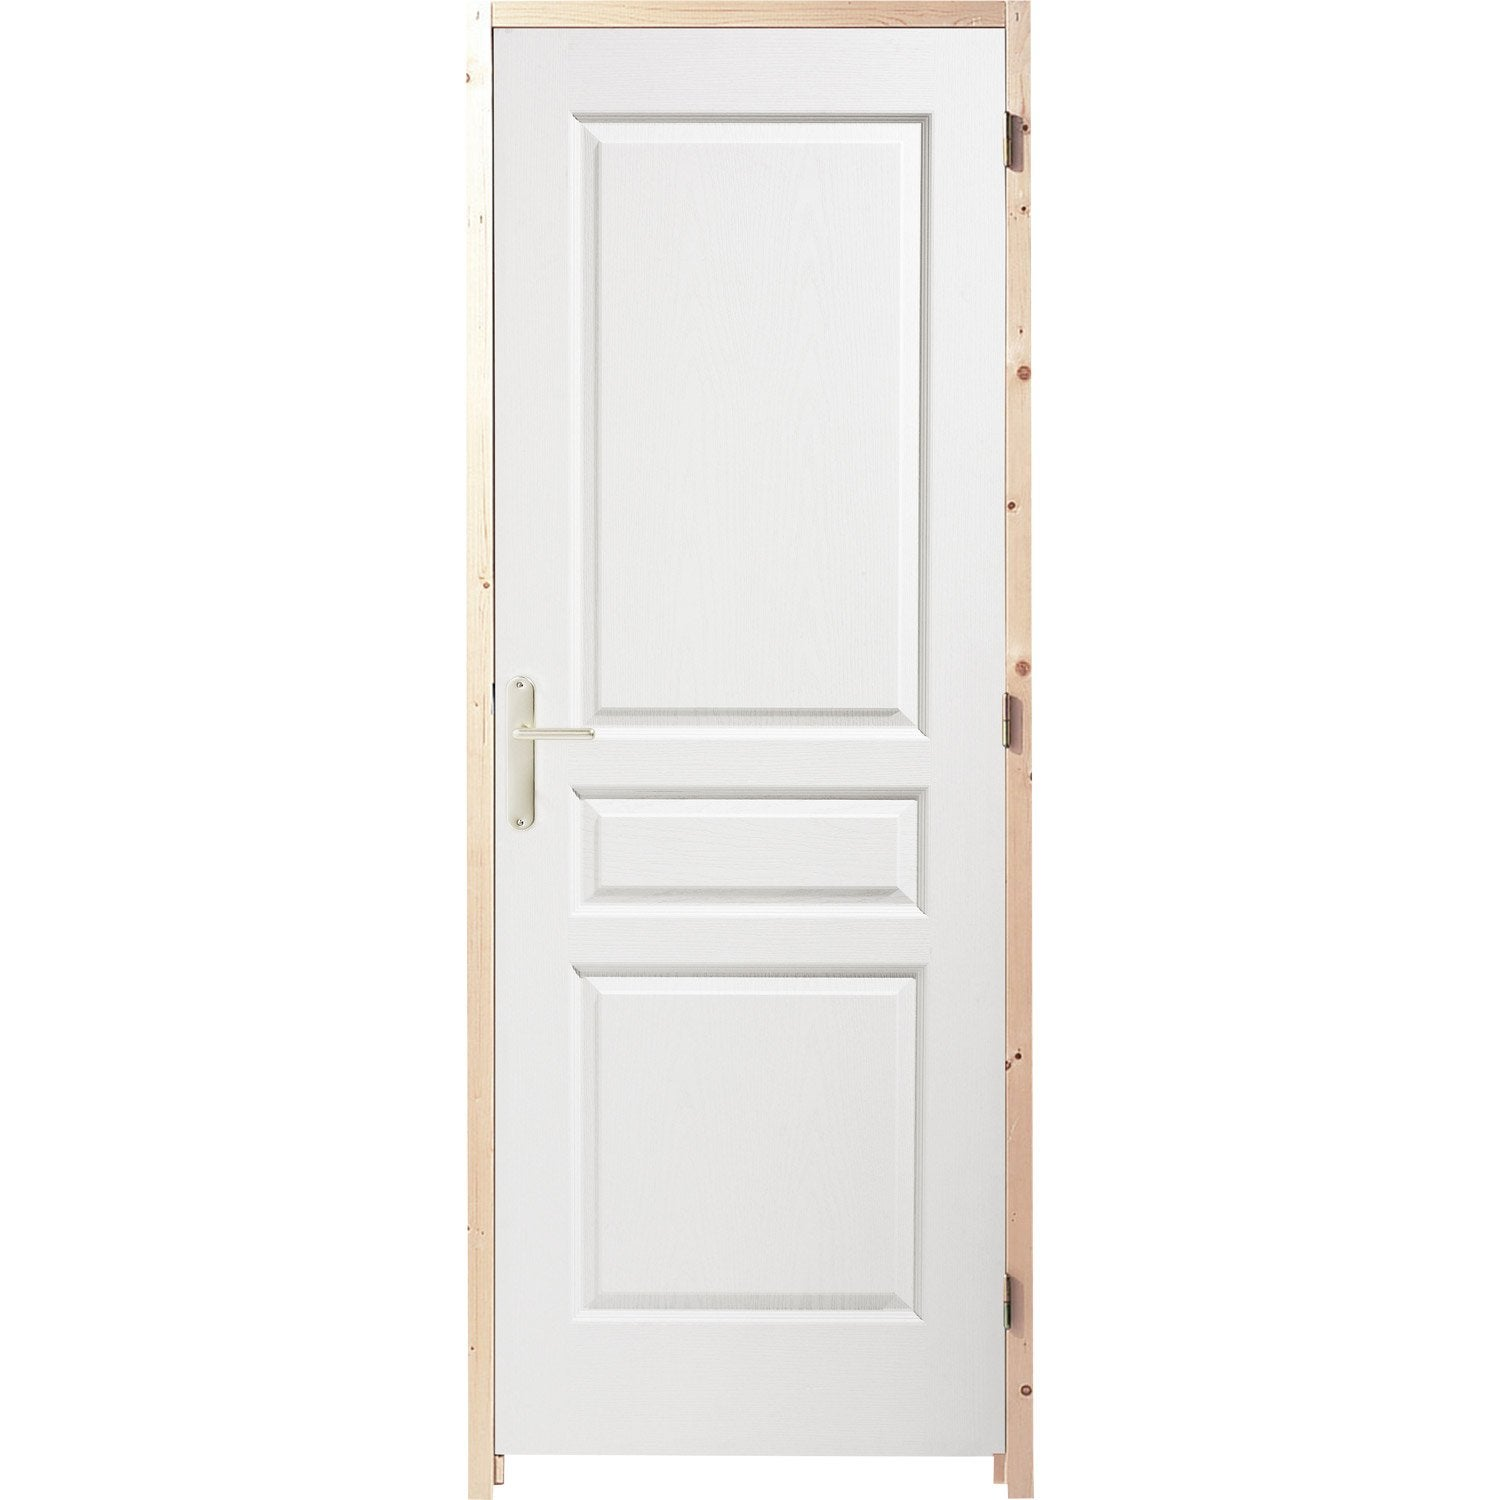 Bloc porte acoustique postform x cm leroy merlin for Porte isolante de service